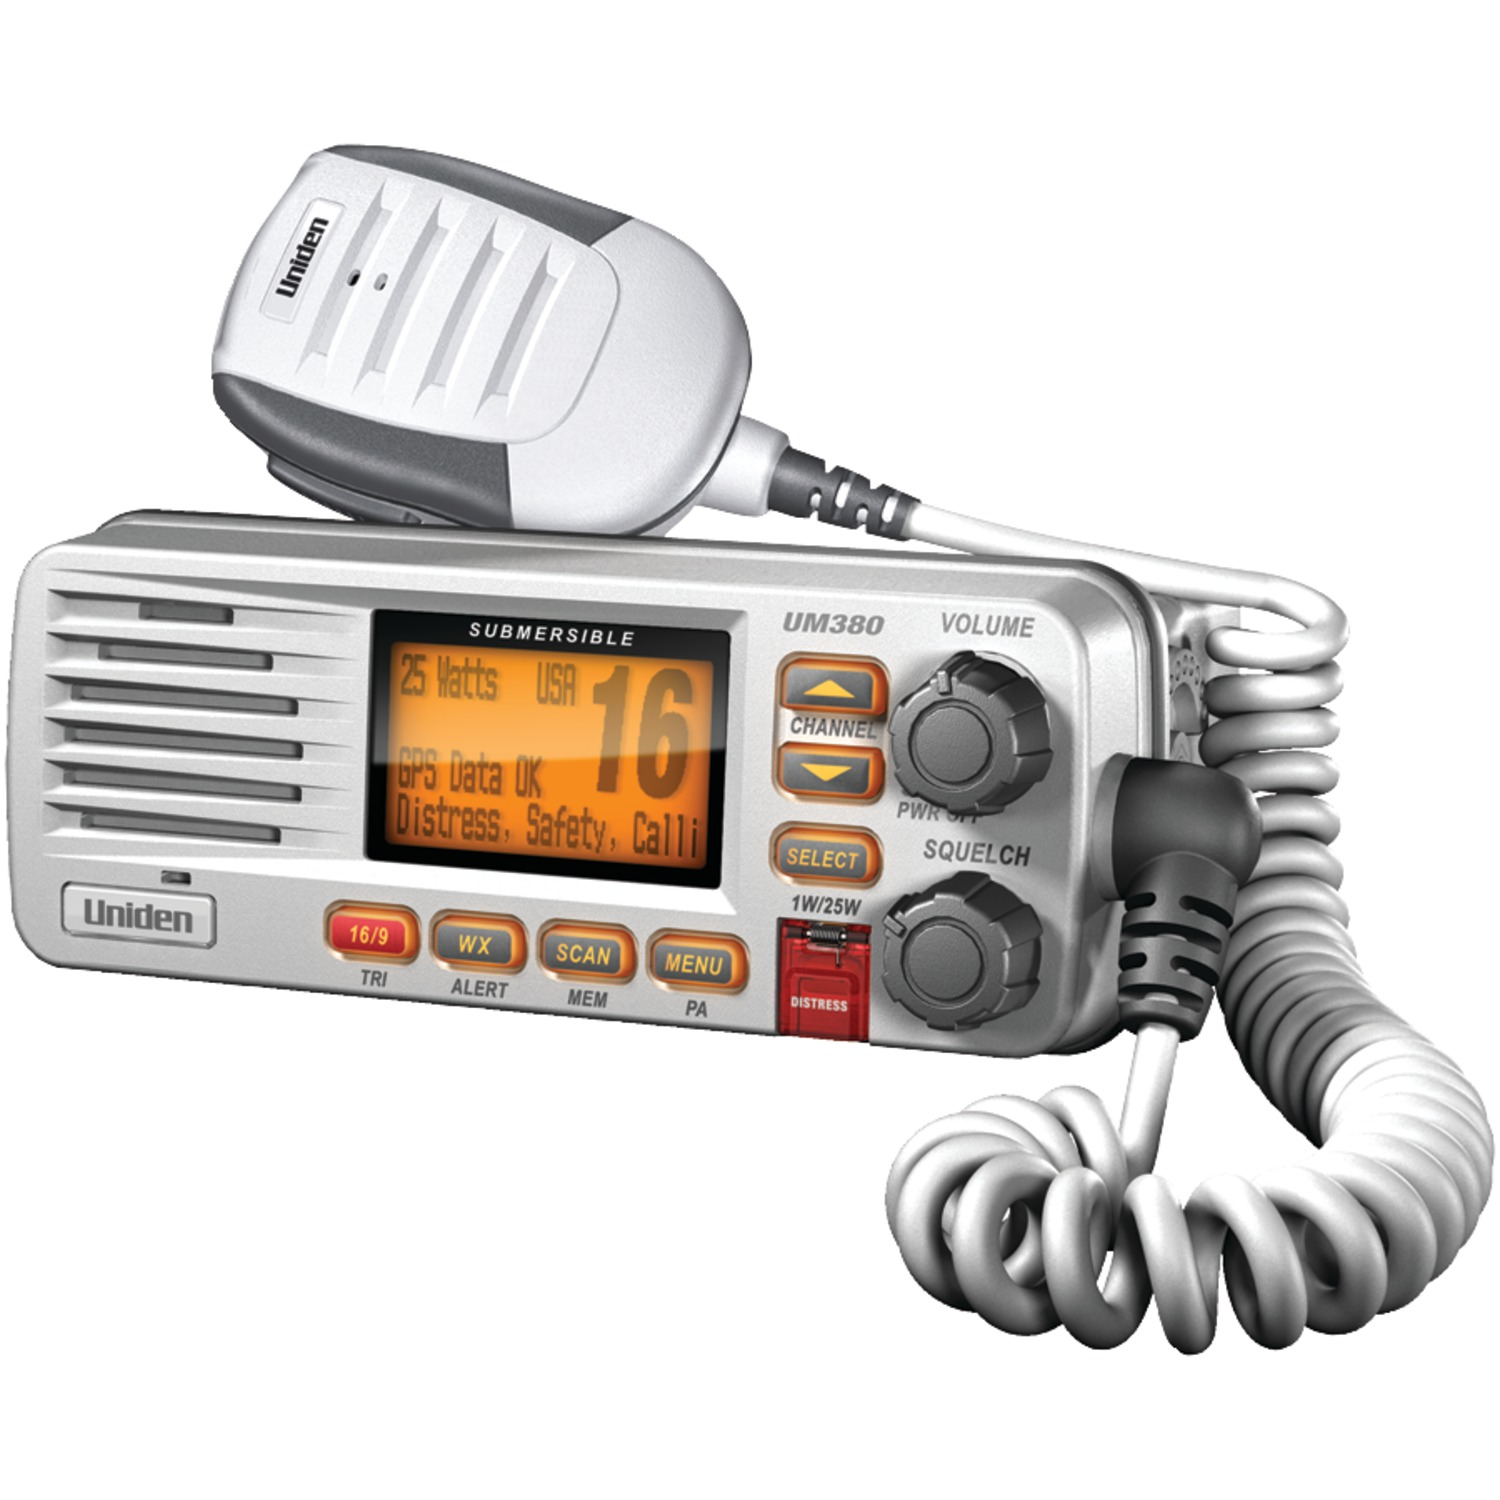 Uniden UM380 Fixed-Mount VHF/2-Way Marine Radio (White)